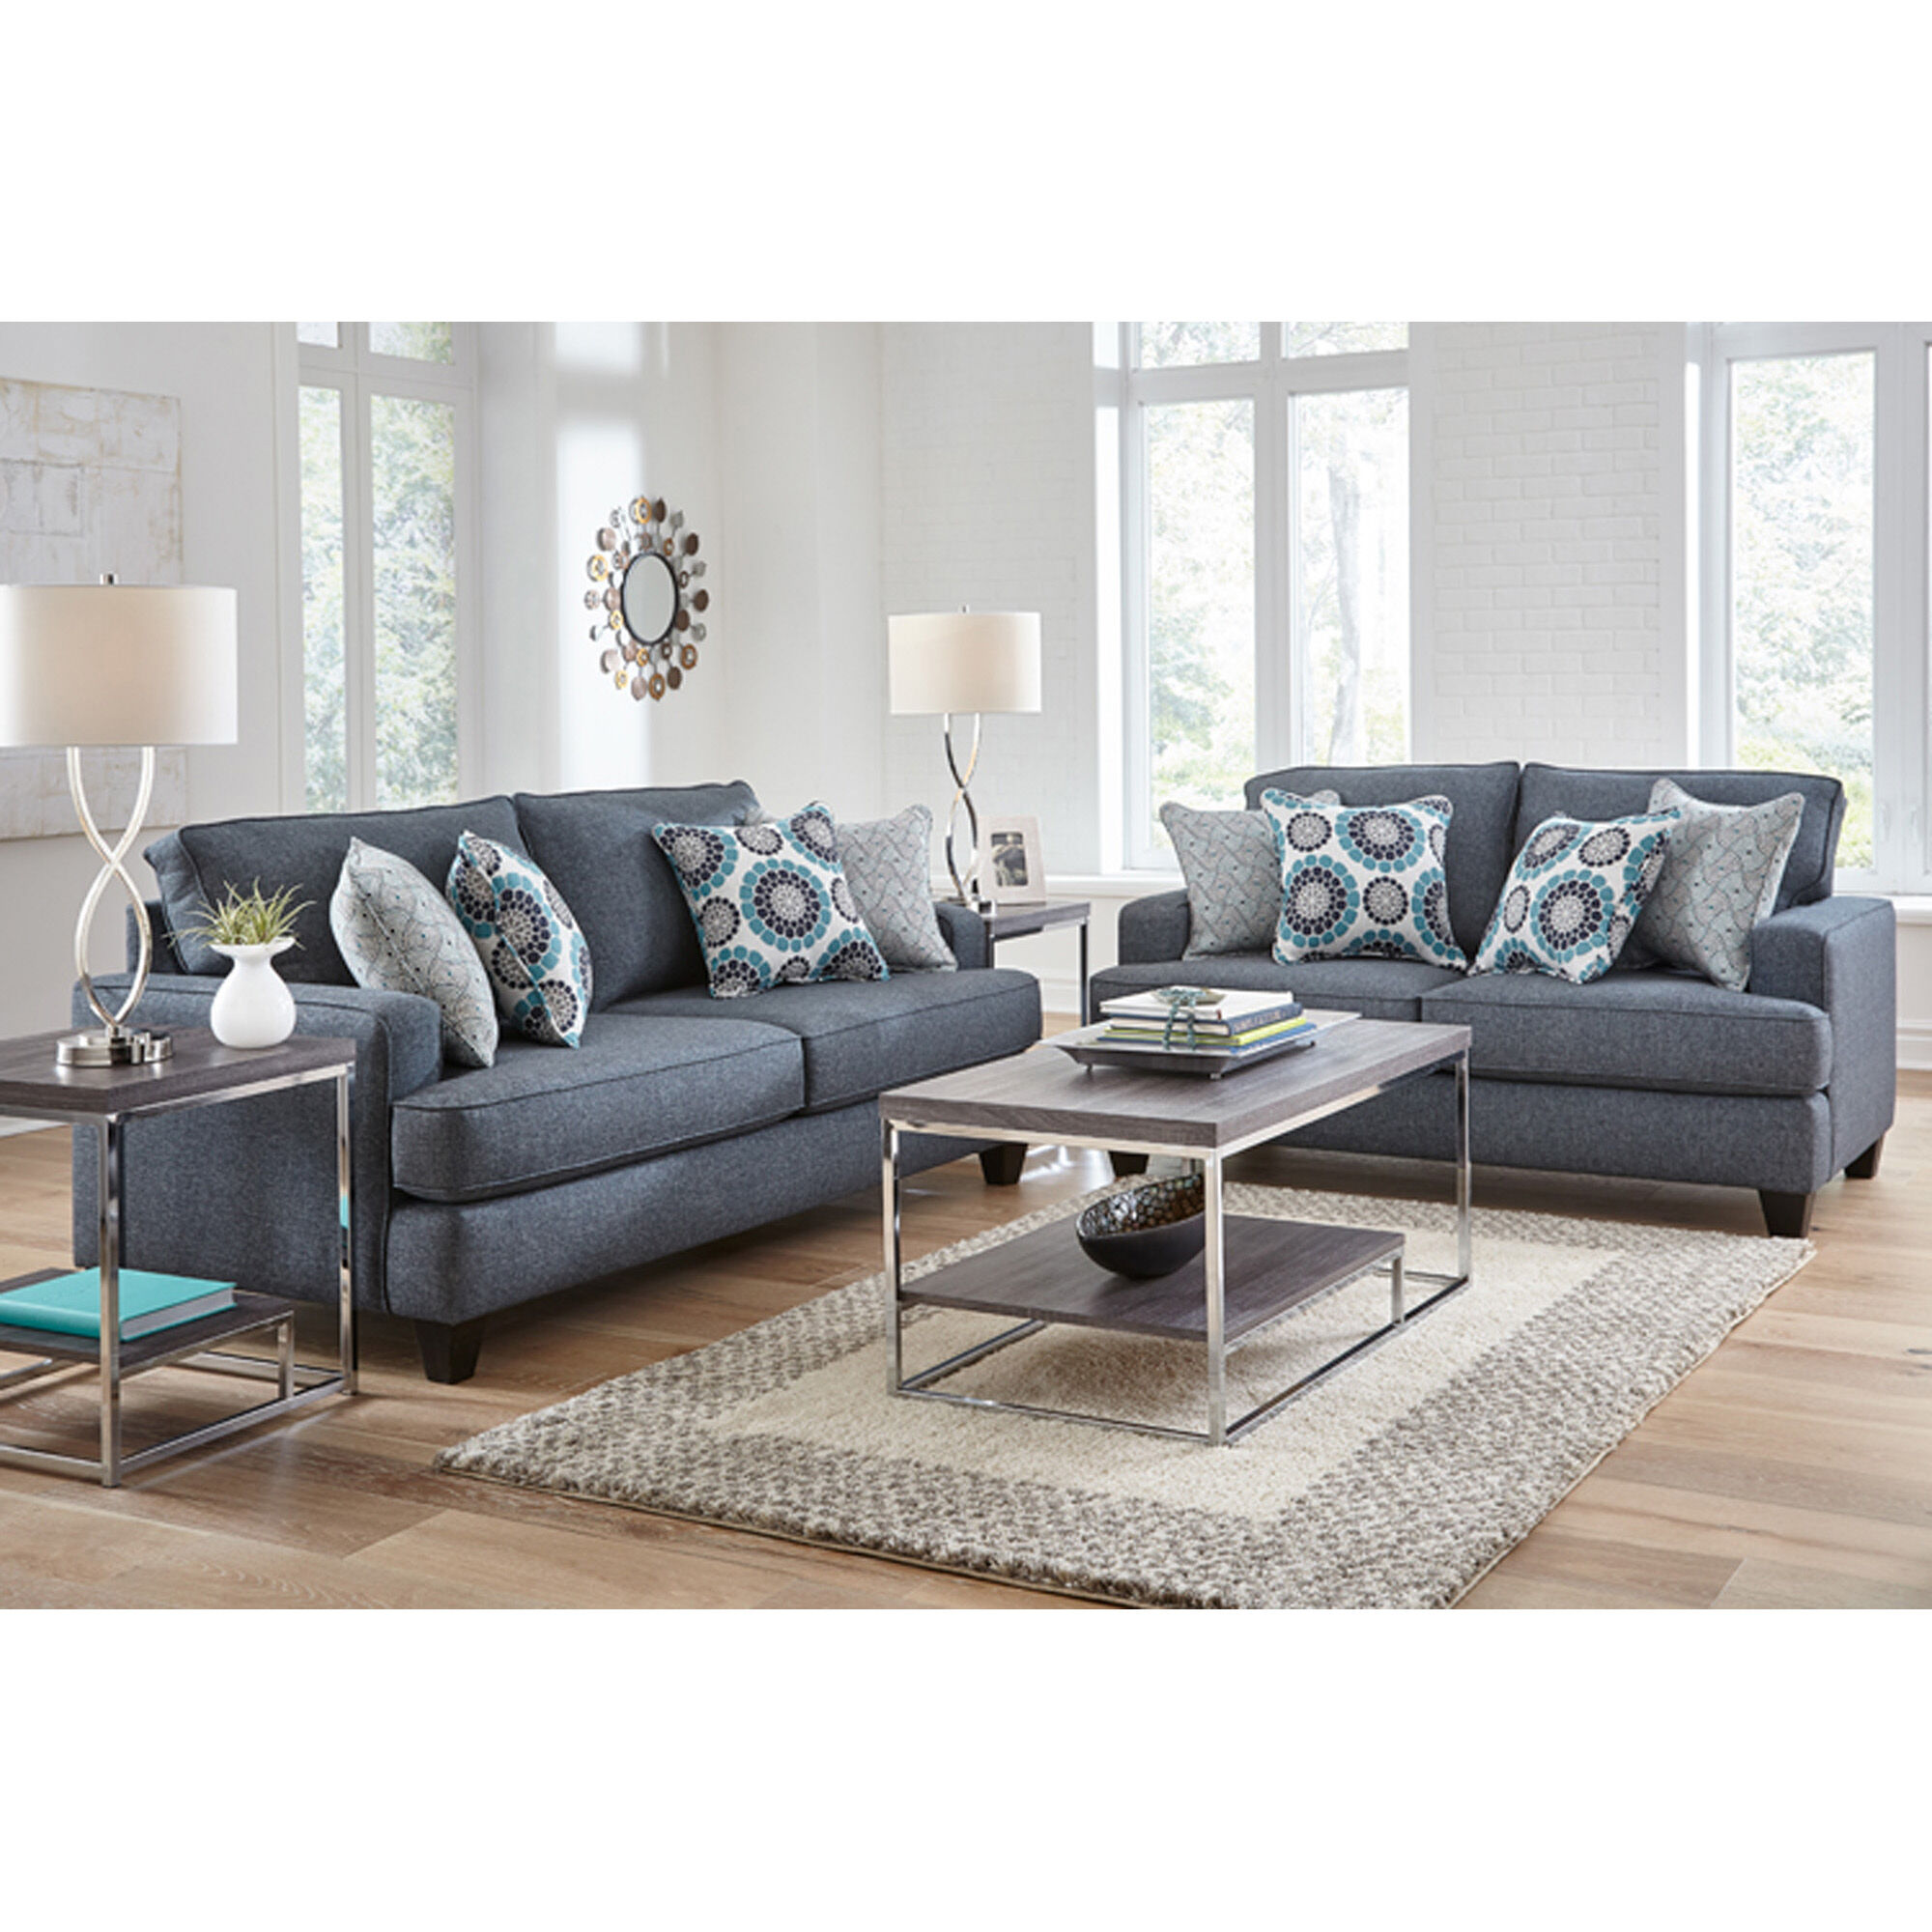 7 Piece Carmela Living Room Collection